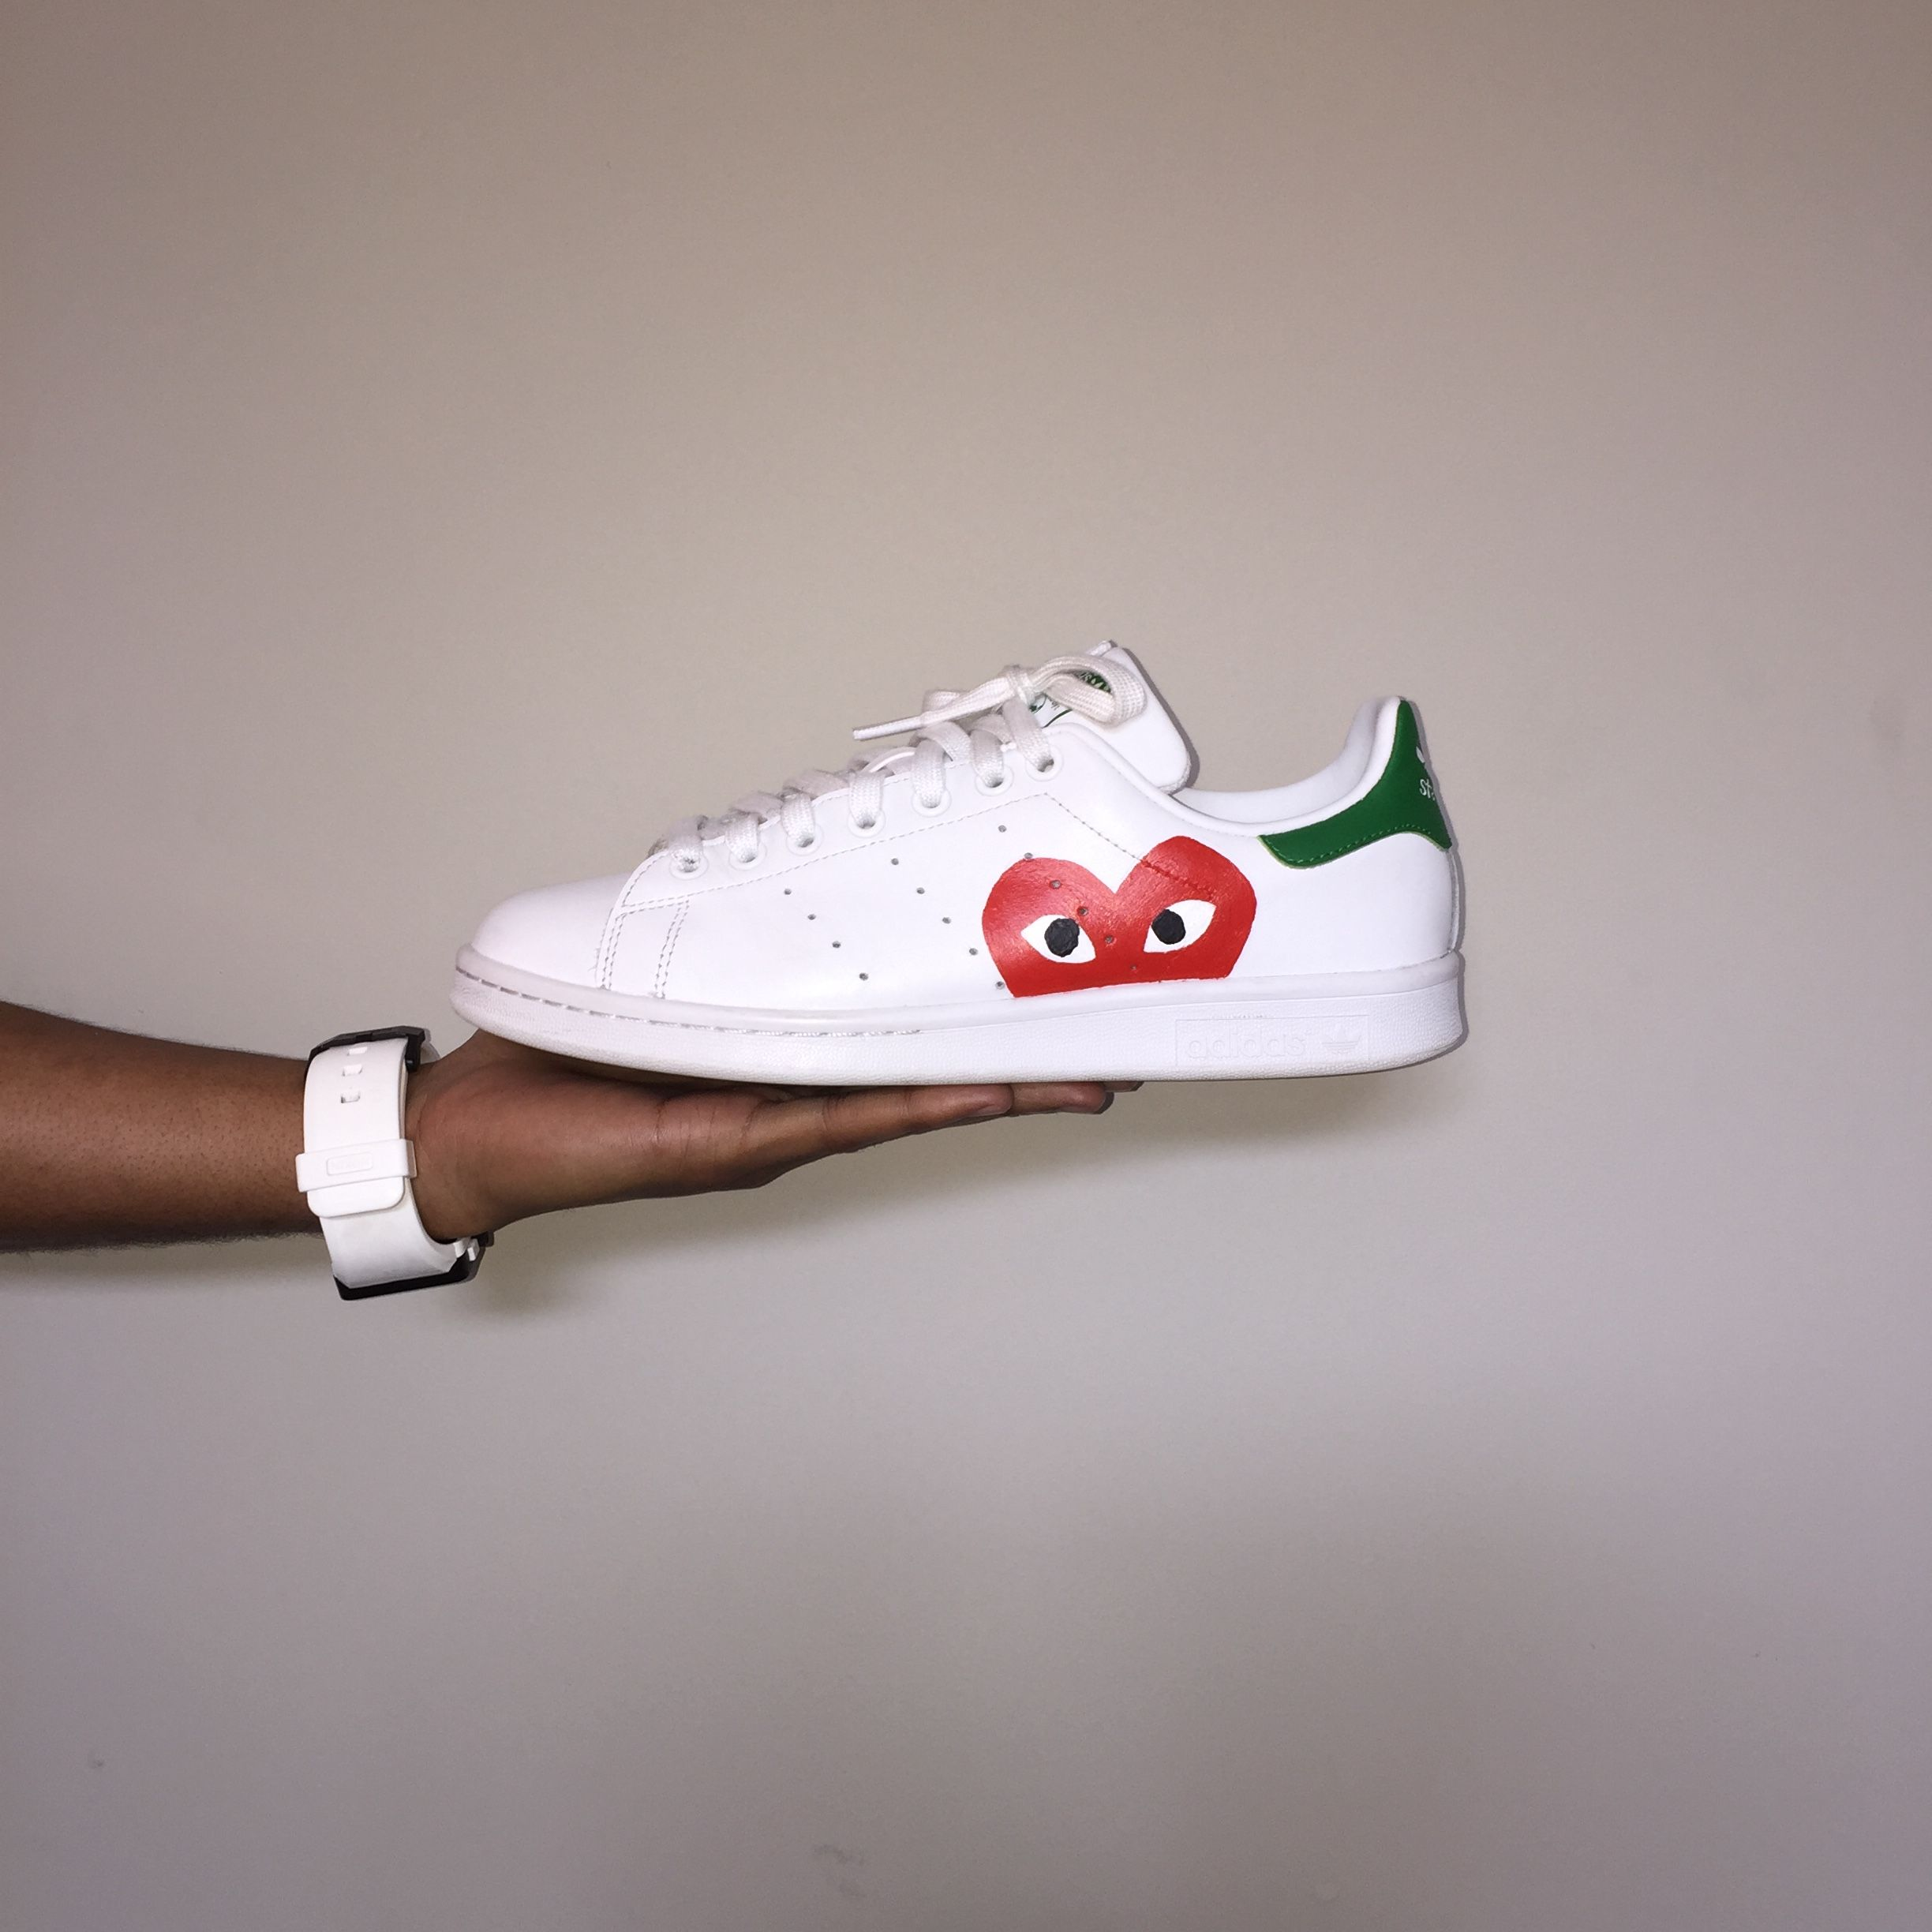 Stan Smith by CDG | Chaussures stan smith, Customiser ...